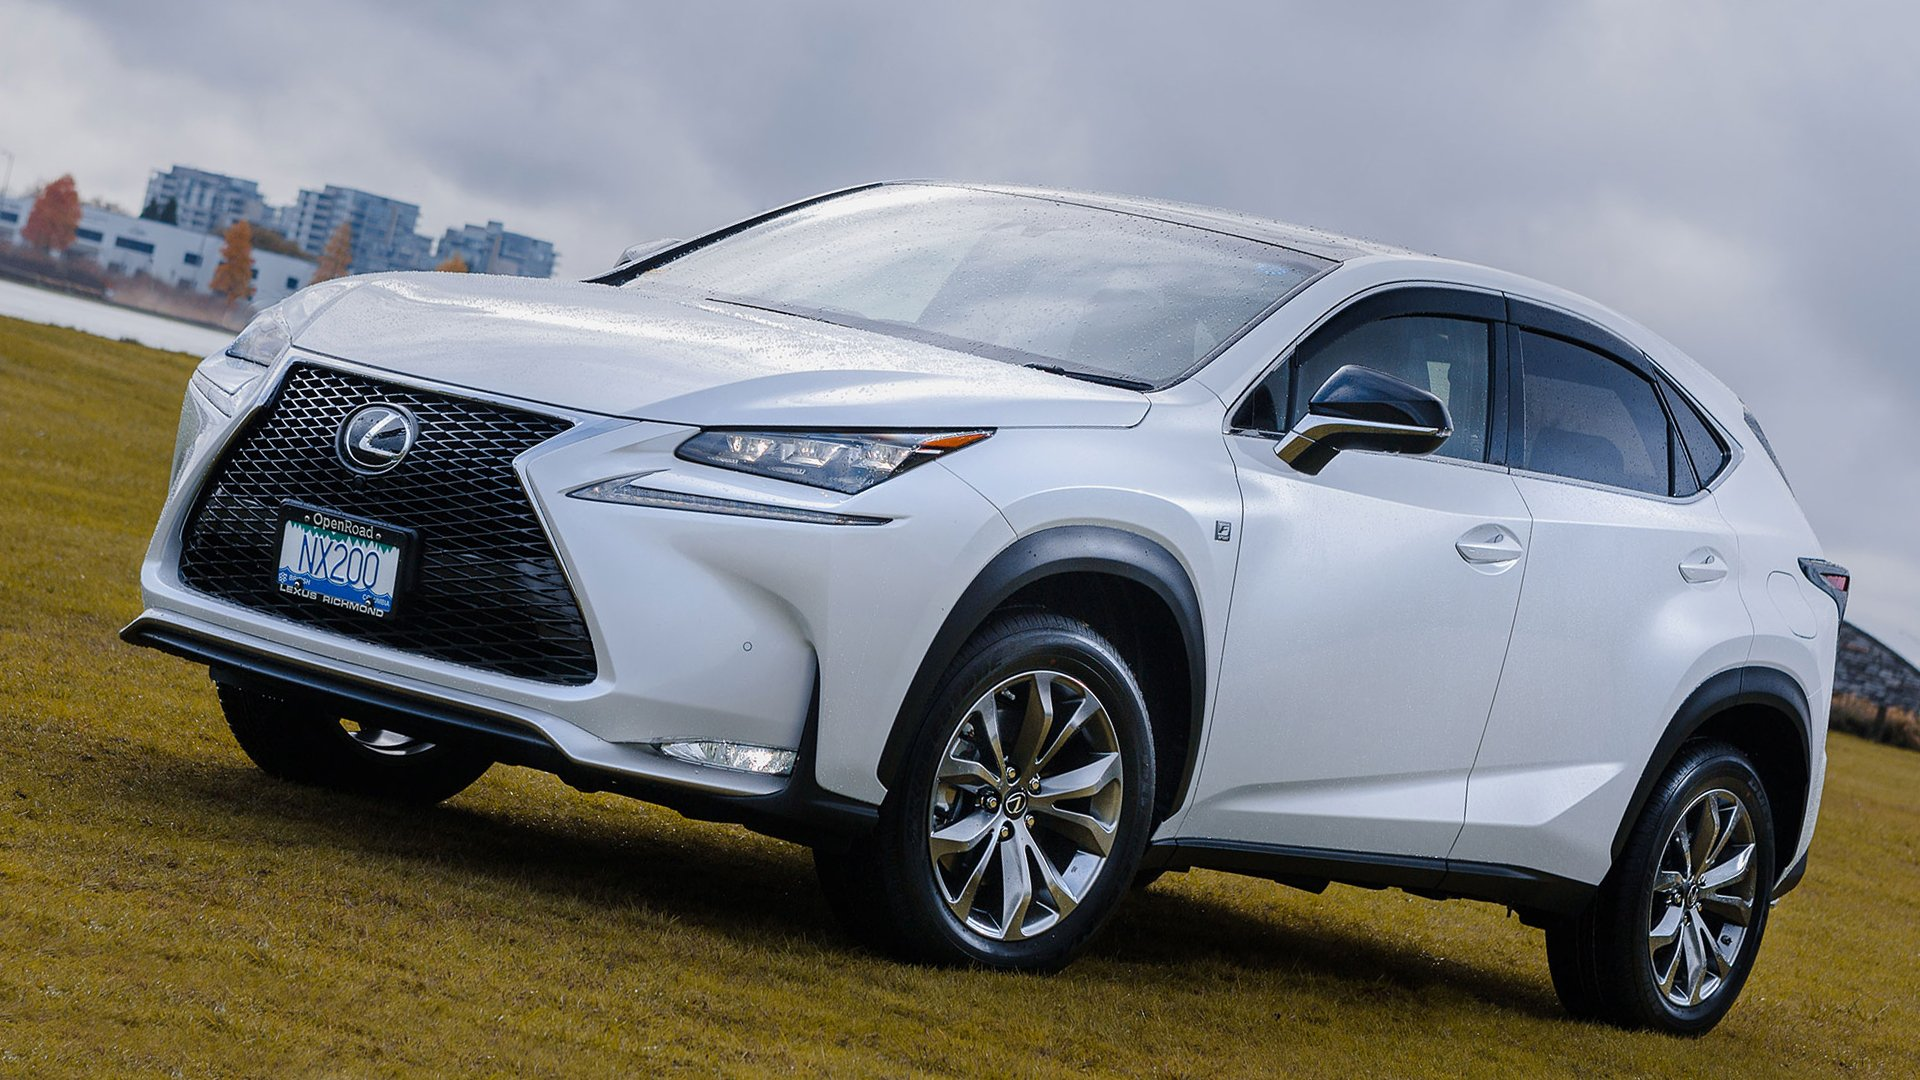 Images Car 2019 Lexus NX 200 HD